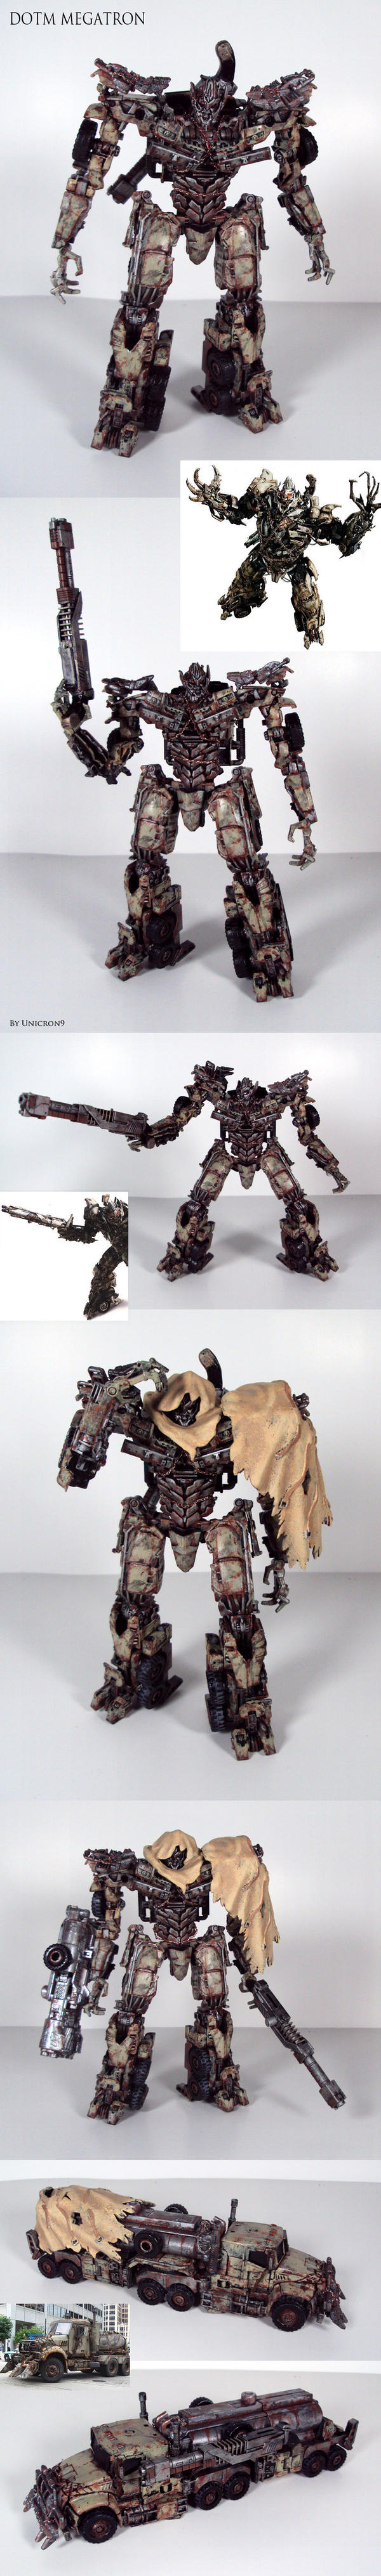 Movie accurate DOTM Megatron by Unicron9